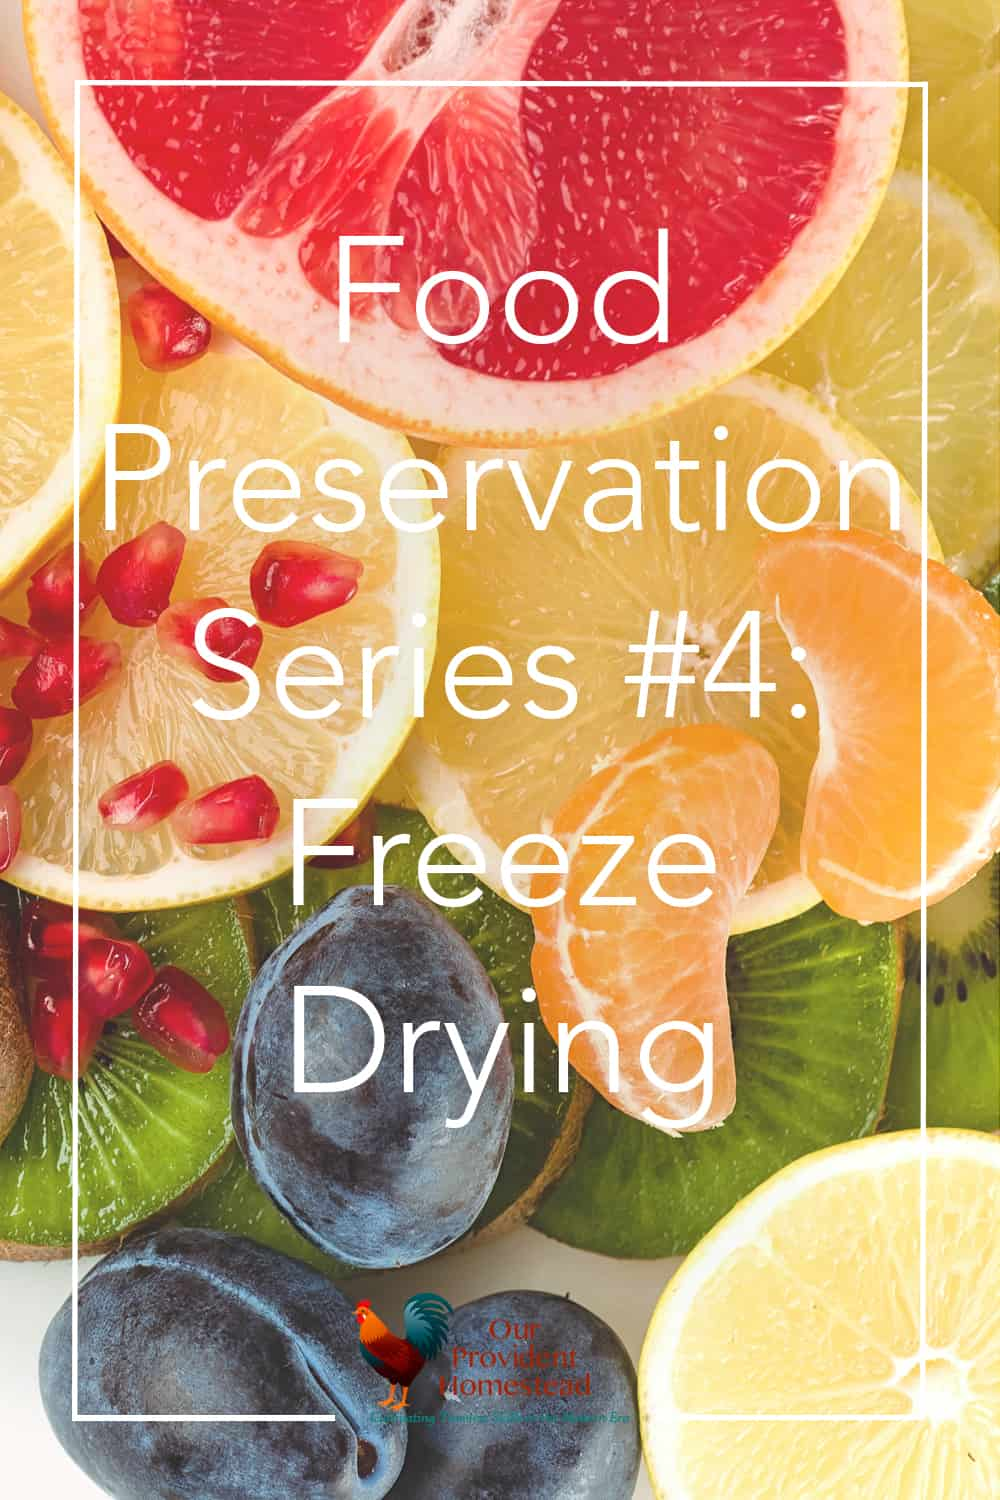 Did you know you can freeze dry your harvest at home? Click here to see the fourth part of our food preservation series and how freeze drying works. #harvestright #freezedrying #foodpreservation